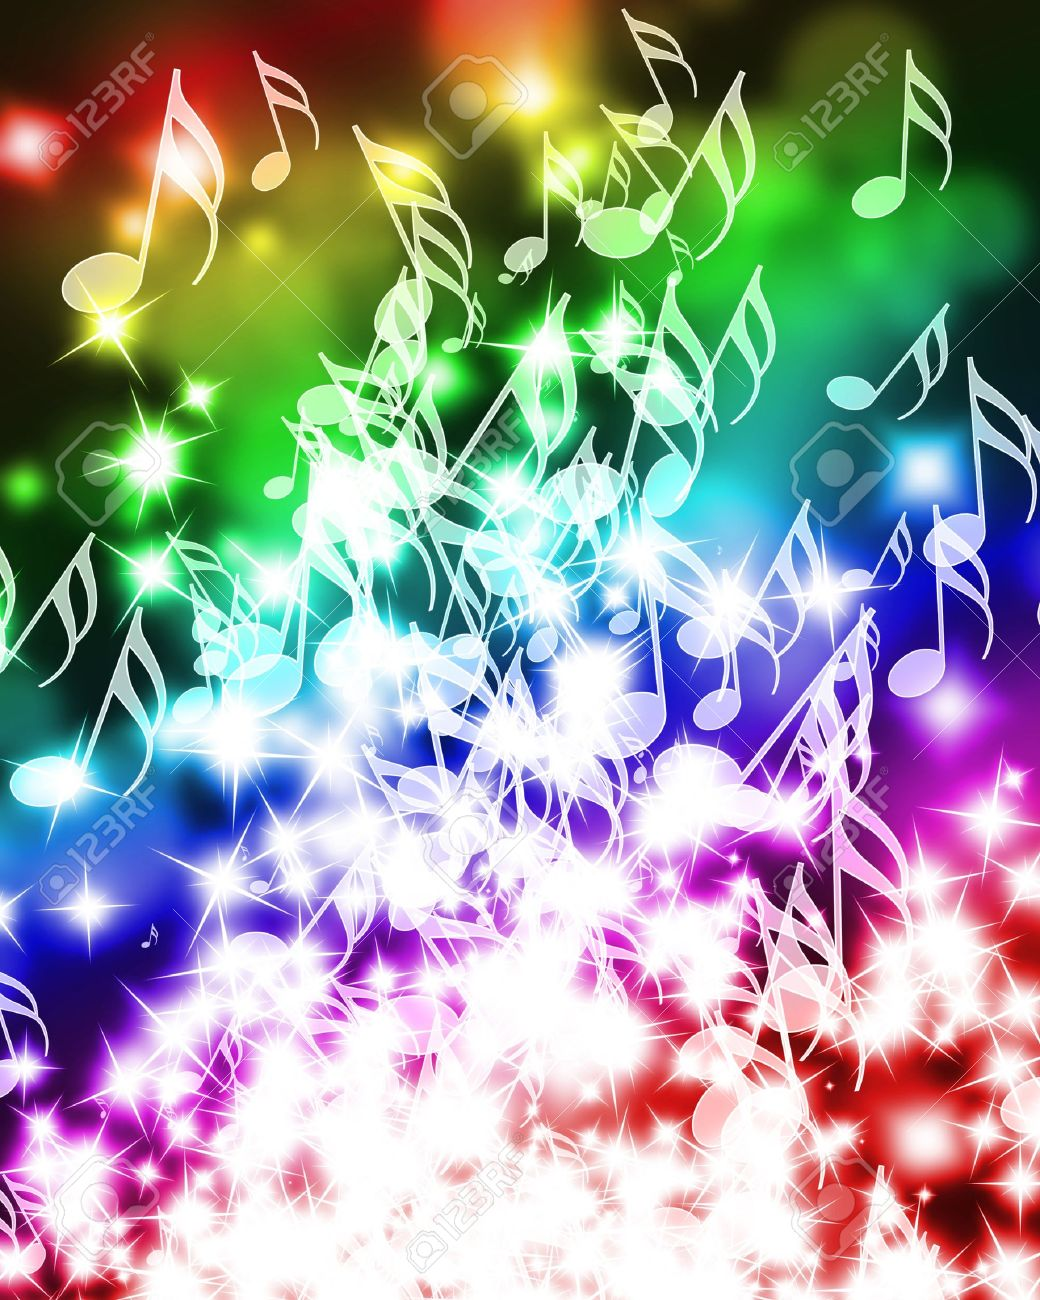 Top Wallpaper Music Rainbow - 10342373-colorful-music-notes-on-a-beautiful-rainbow-background  You Should Have_21821.jpg